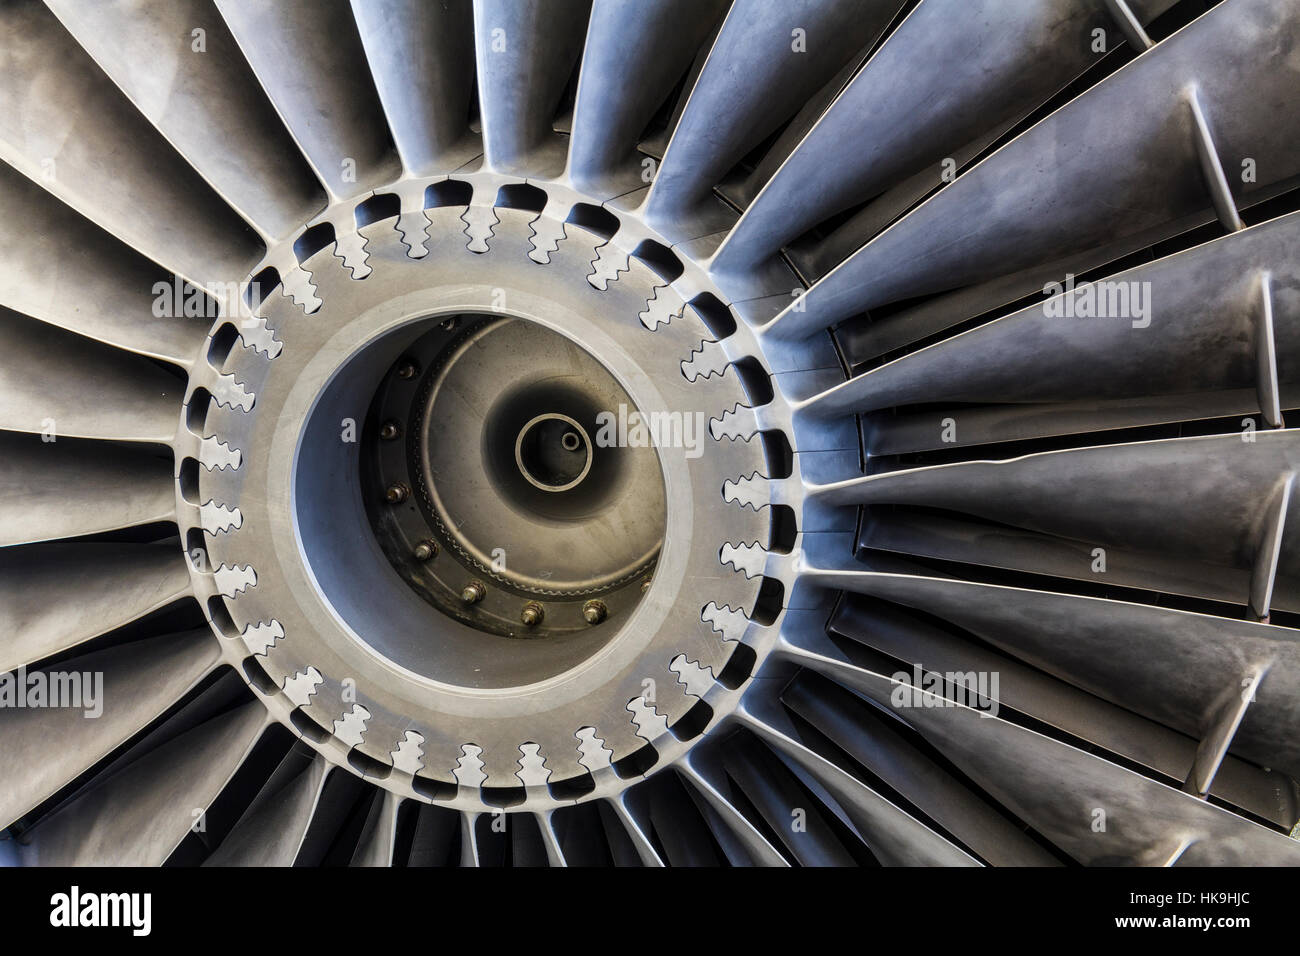 Indianapolis - Circa January 2017: Exterior of a Rolls-Royce F402 Pegasus Jet Engine, used in the VSTOL AV-8B Harrier - Stock Image